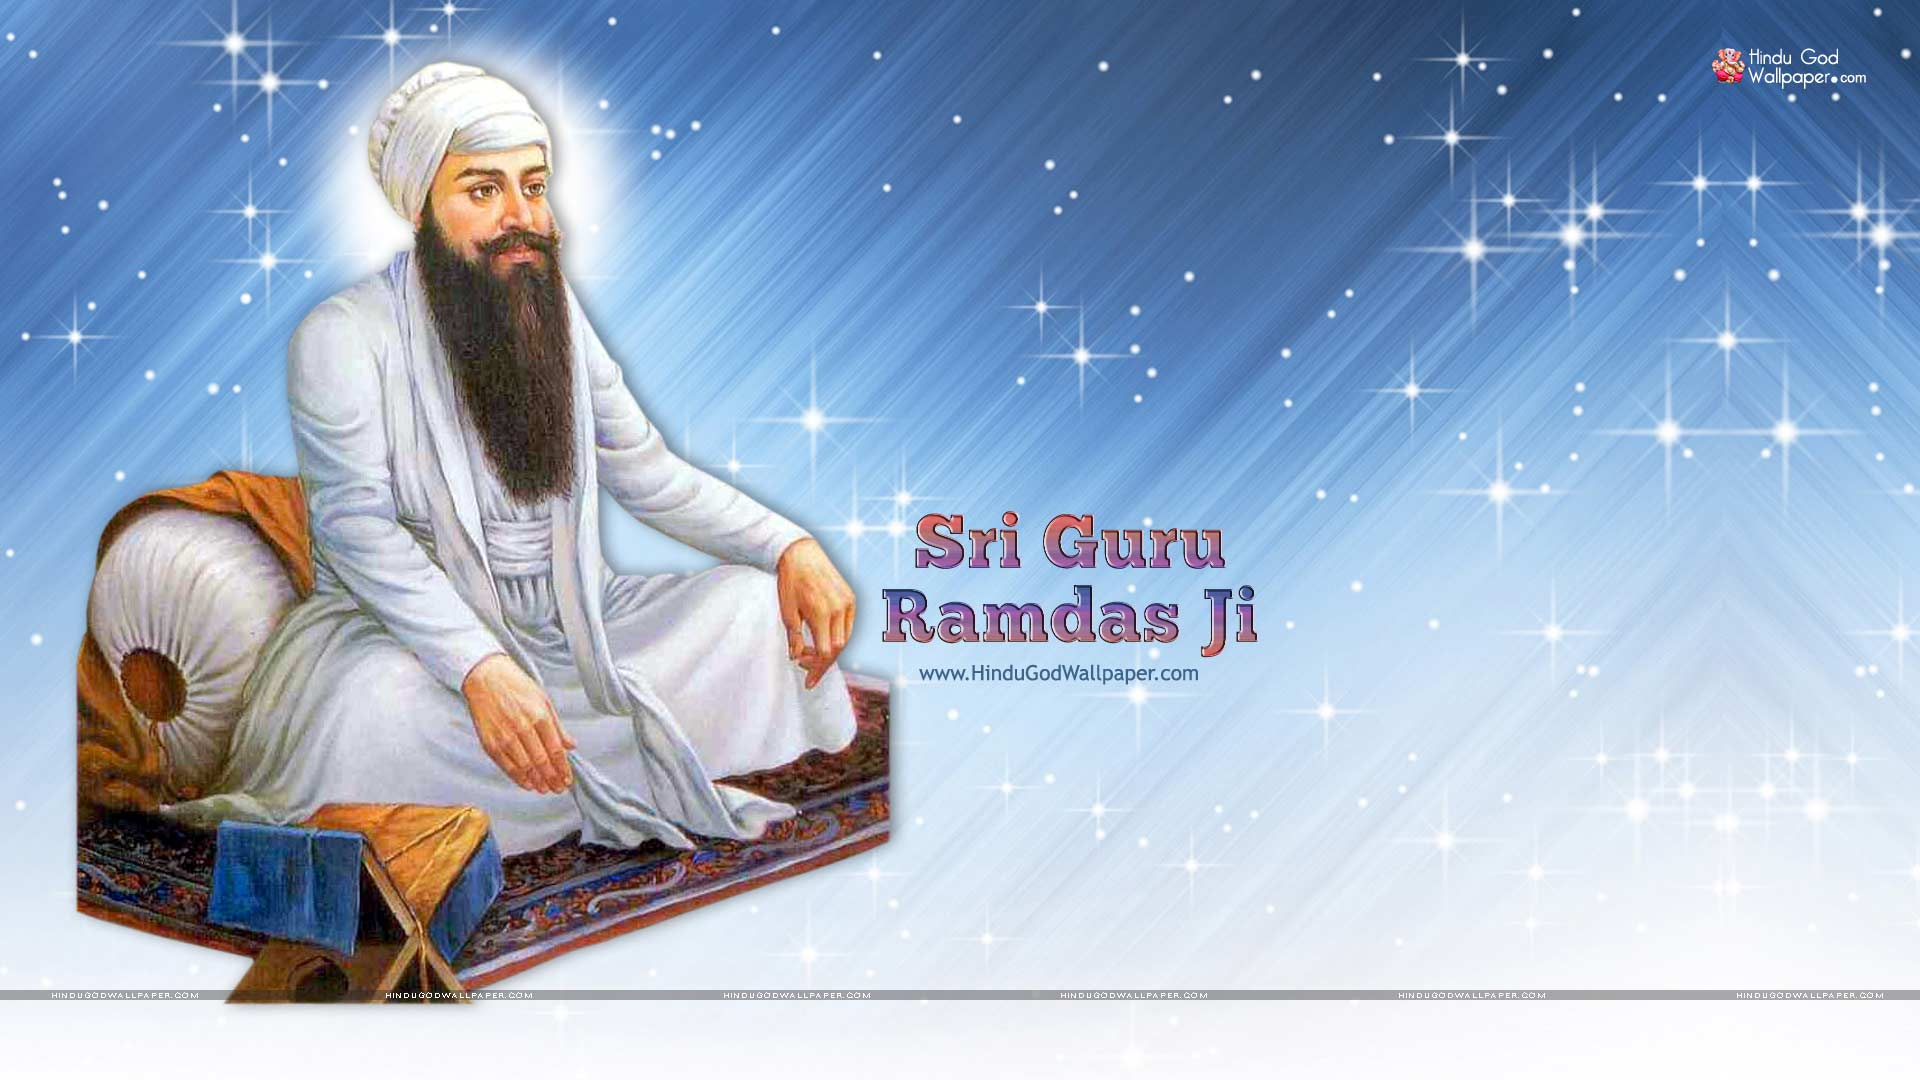 guru ramdas ji hd wallpaper